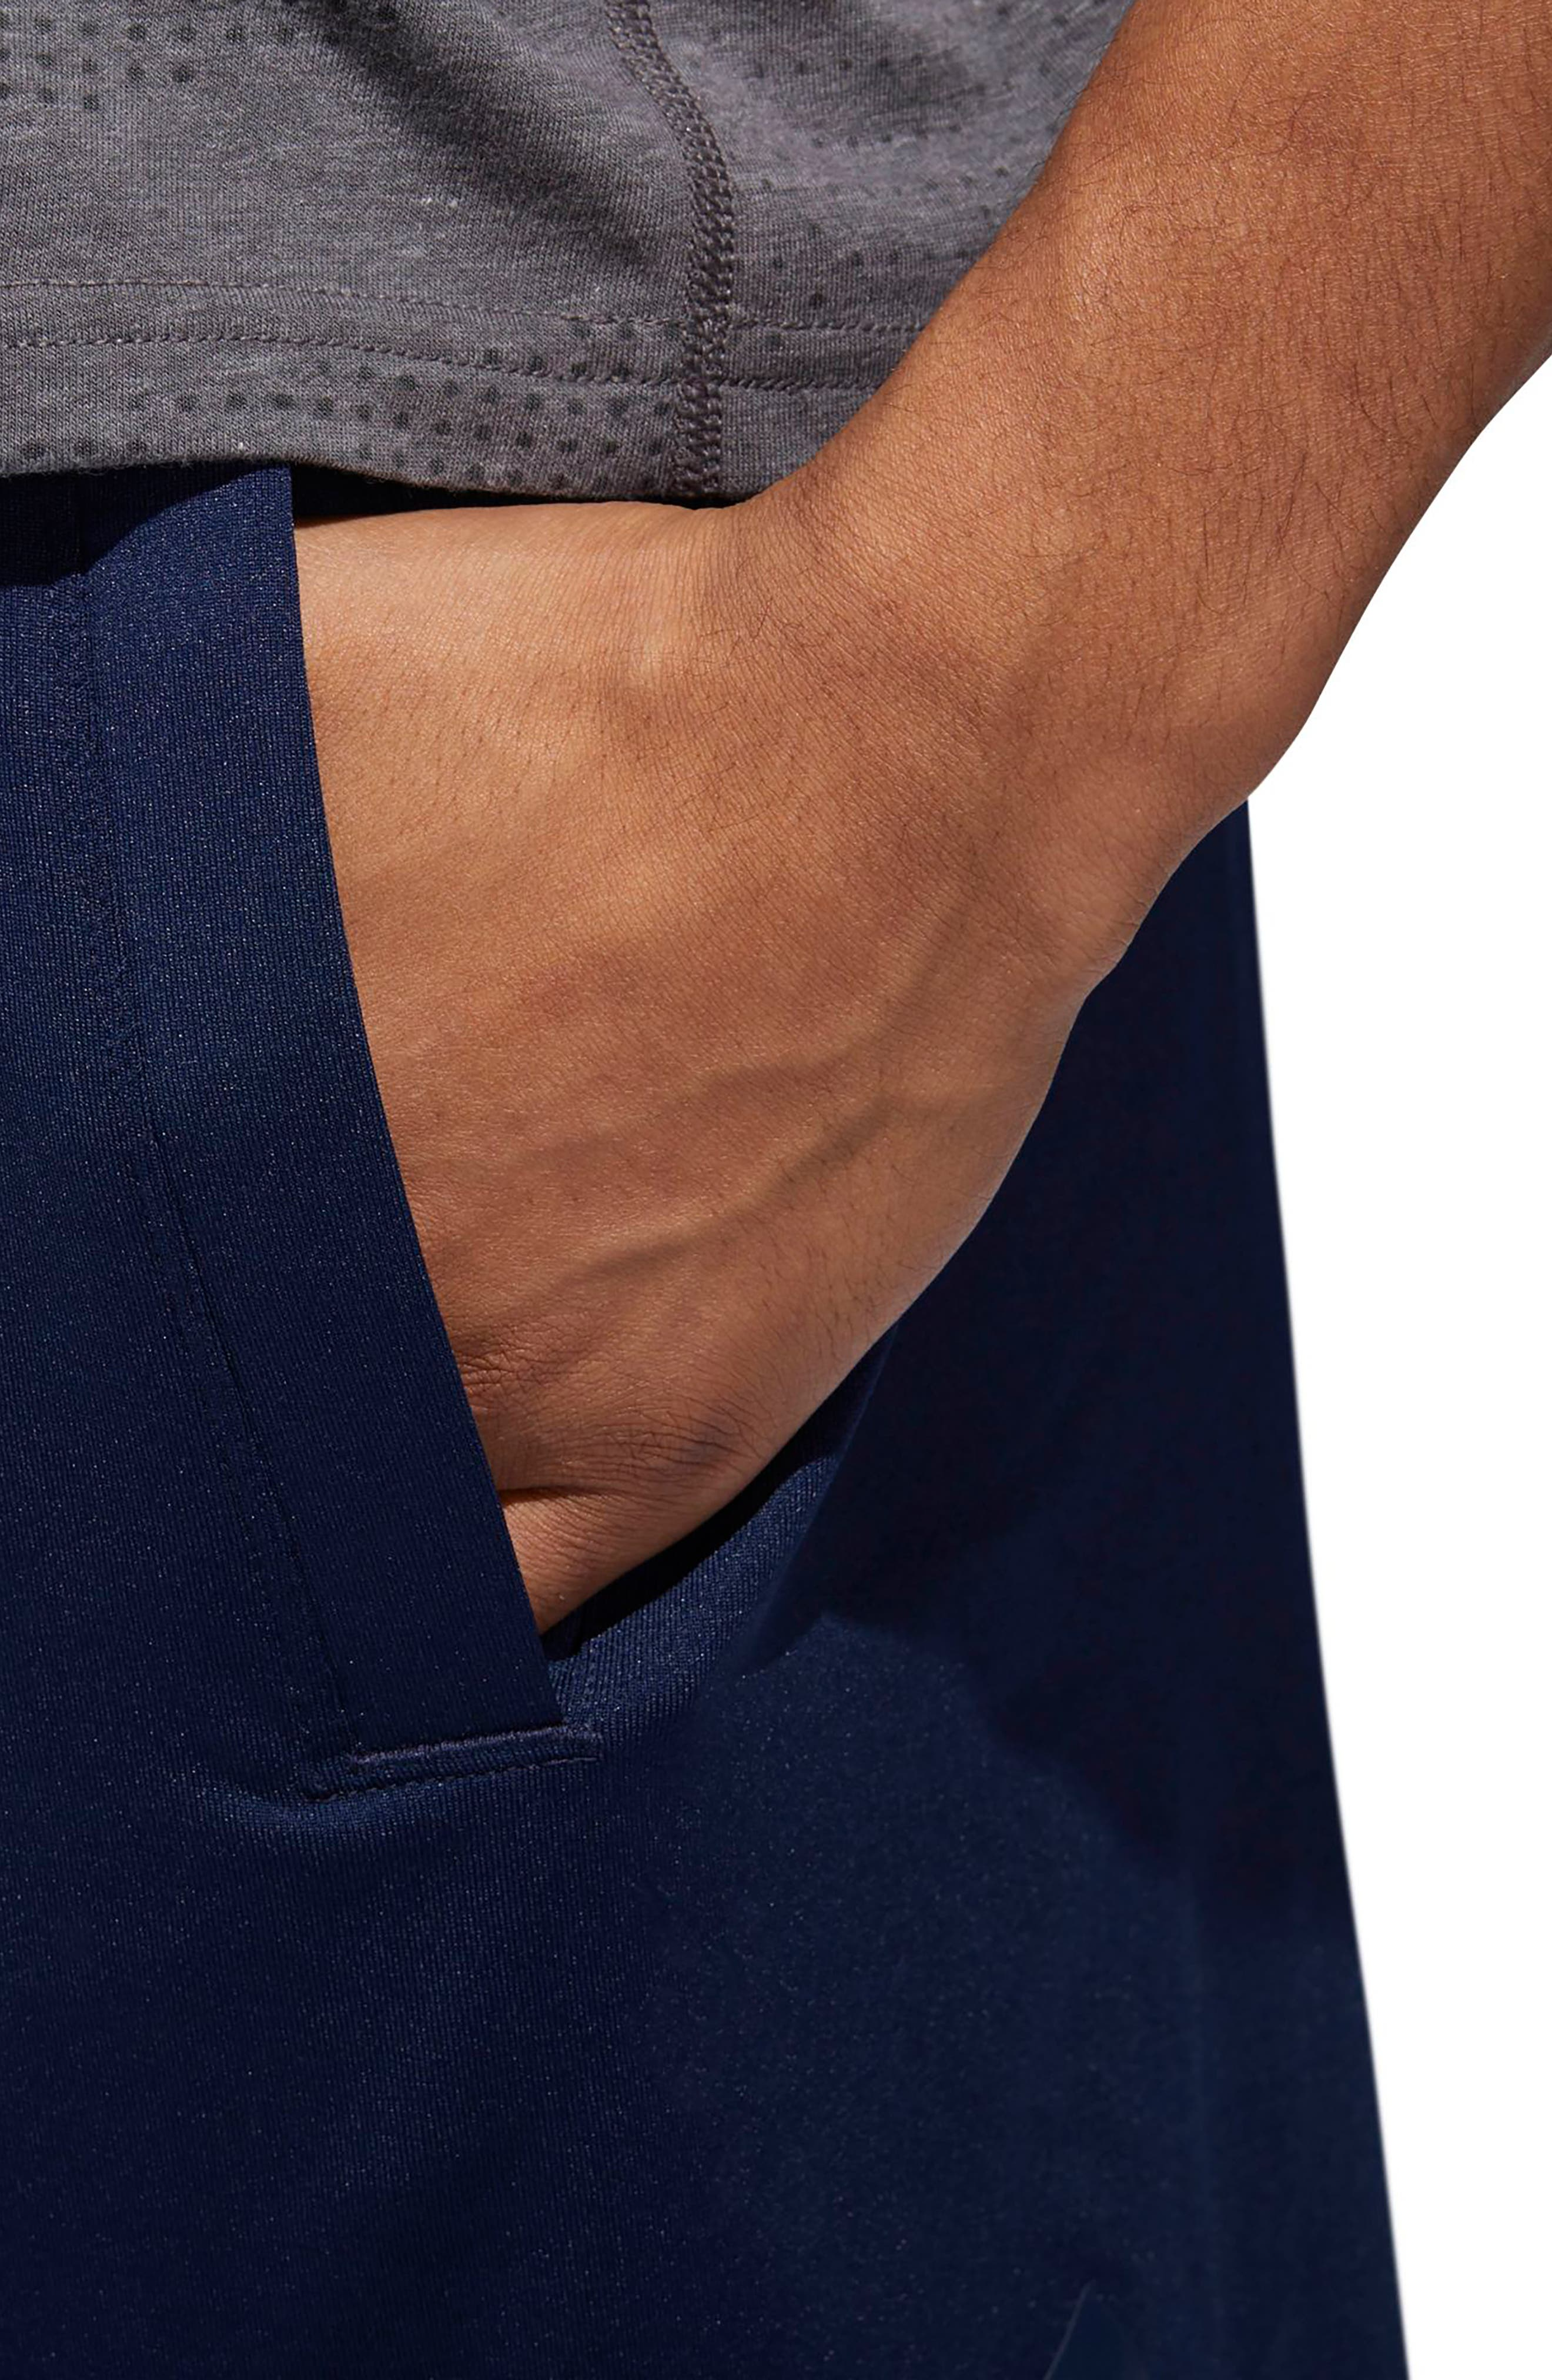 SB Hype Icon Shorts,                             Alternate thumbnail 7, color,                             COLLEGIATE NAVY/ BLACK